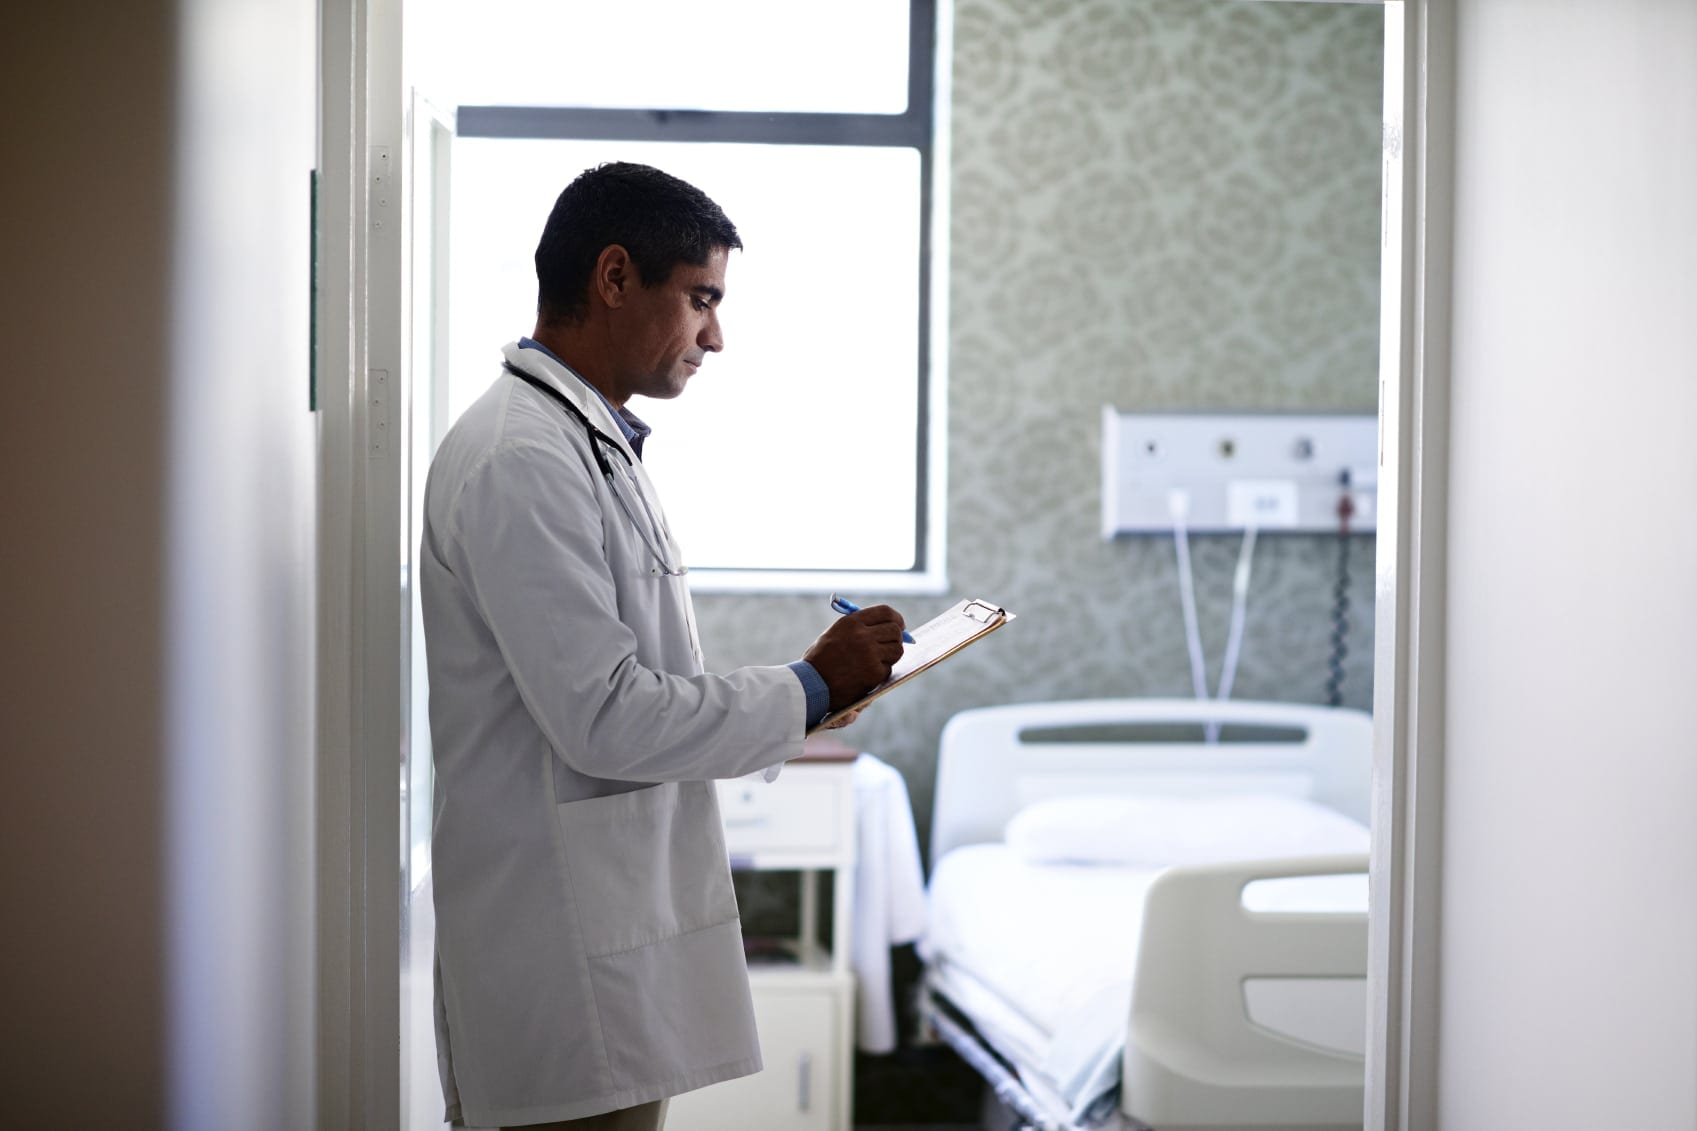 Male Doctor Filling Out Medical Form Inside Hospital Room Stock Photo